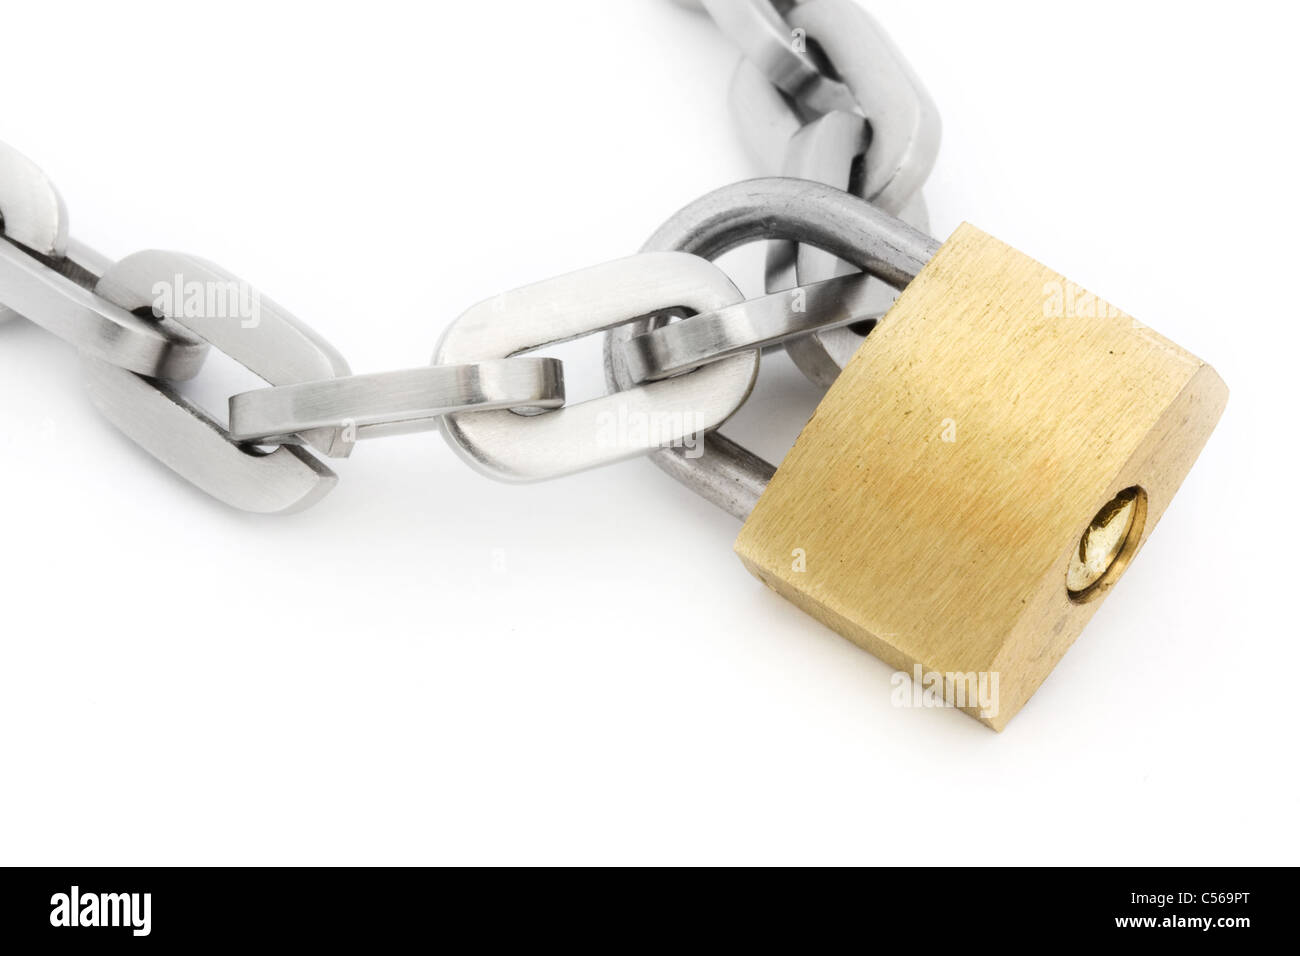 Padlock and chain isolated on white - Stock Image